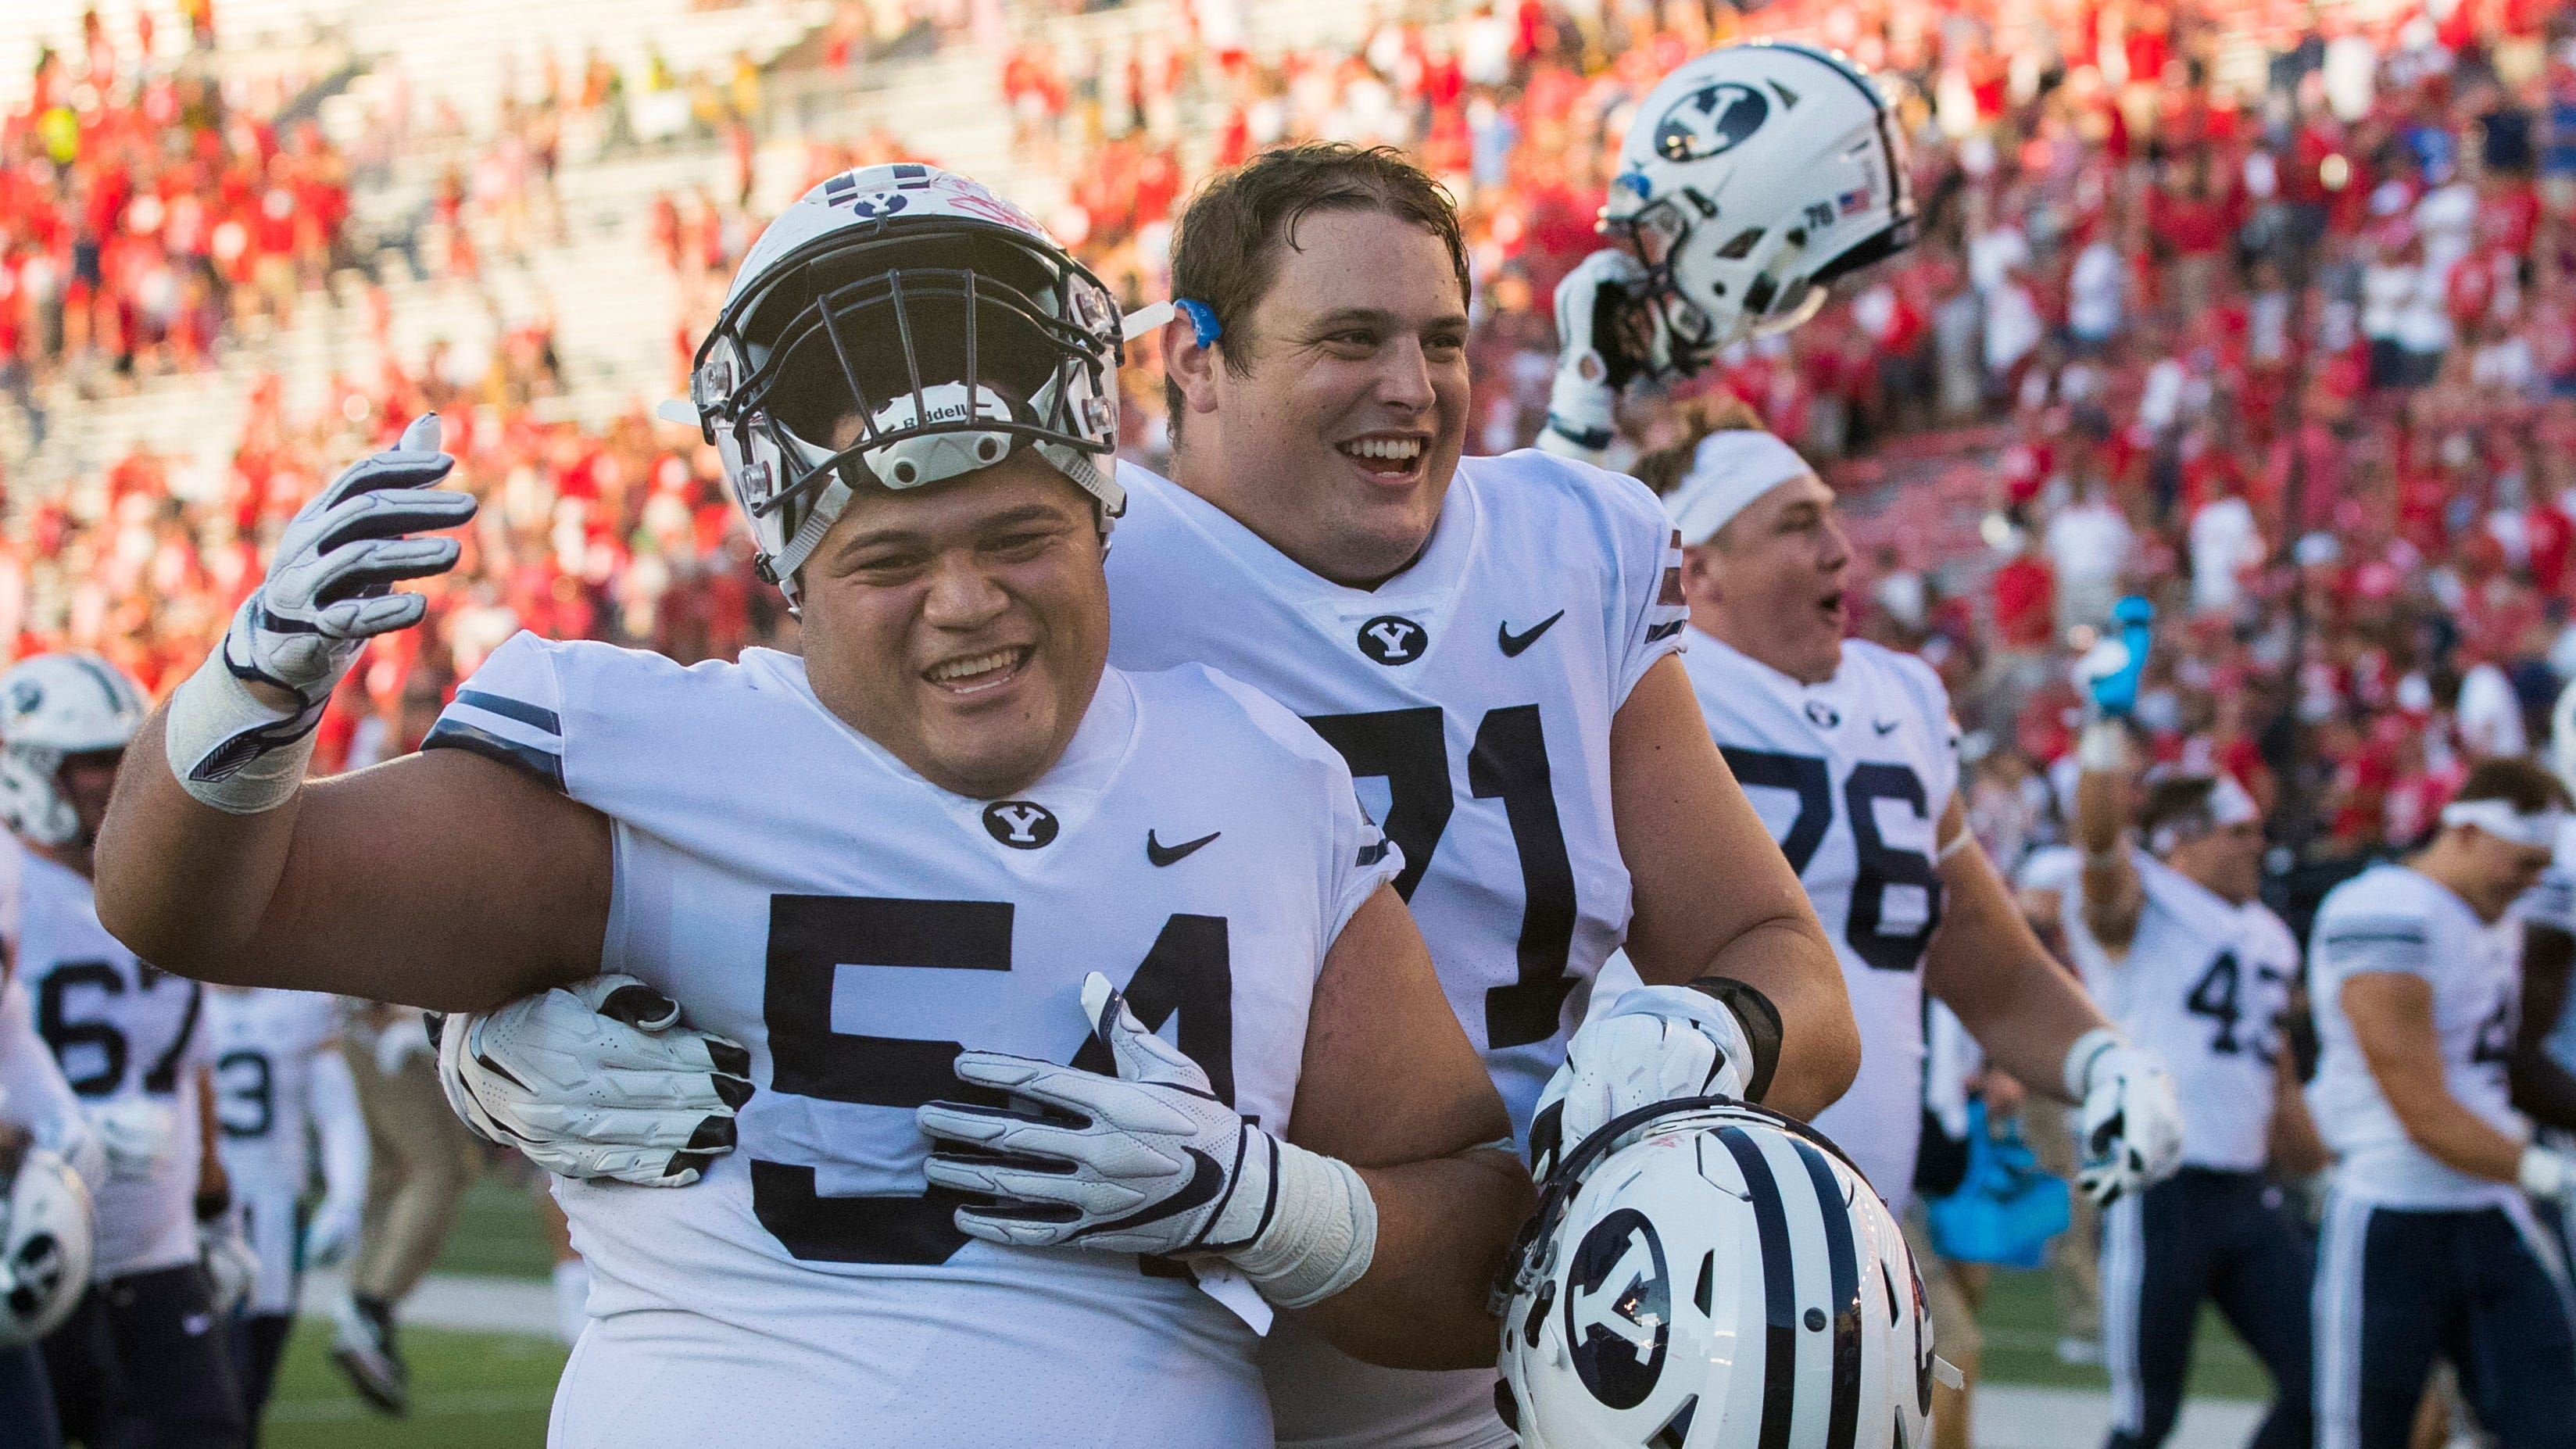 BYU defensive lineman Merrill Taliauli (54) and offensive lineman Austin Hoyt (71) celebrate their 24-21 win at Wisconsin. How did they pull it off? Limiting mistakes was a good start.